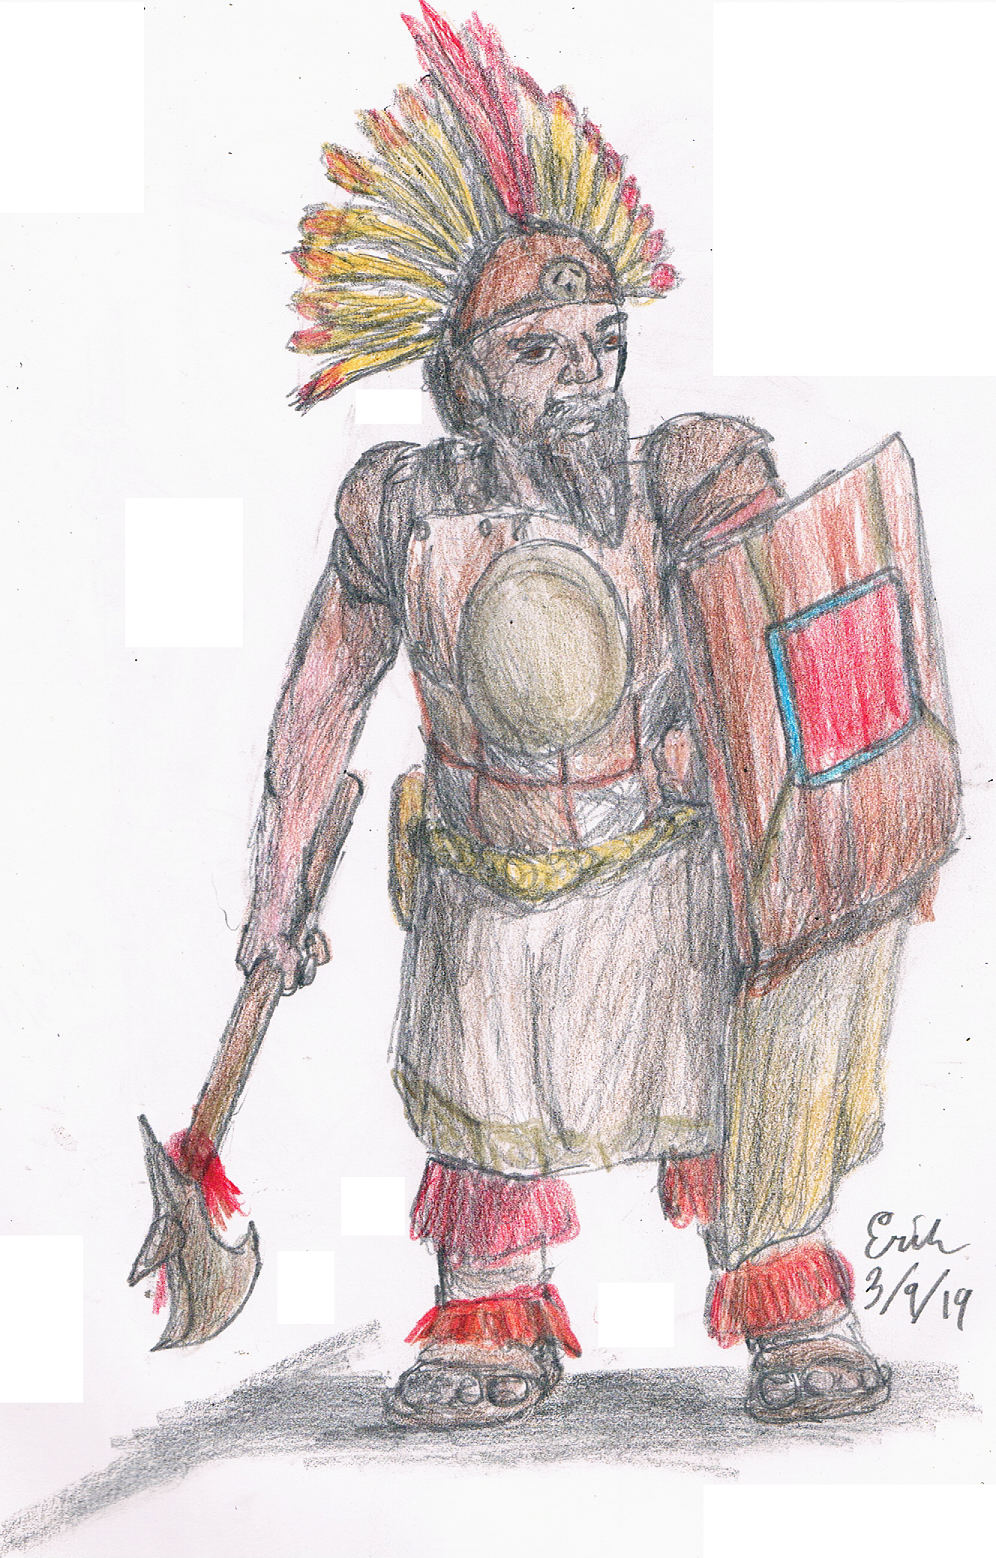 Incan Dwarf Warrior